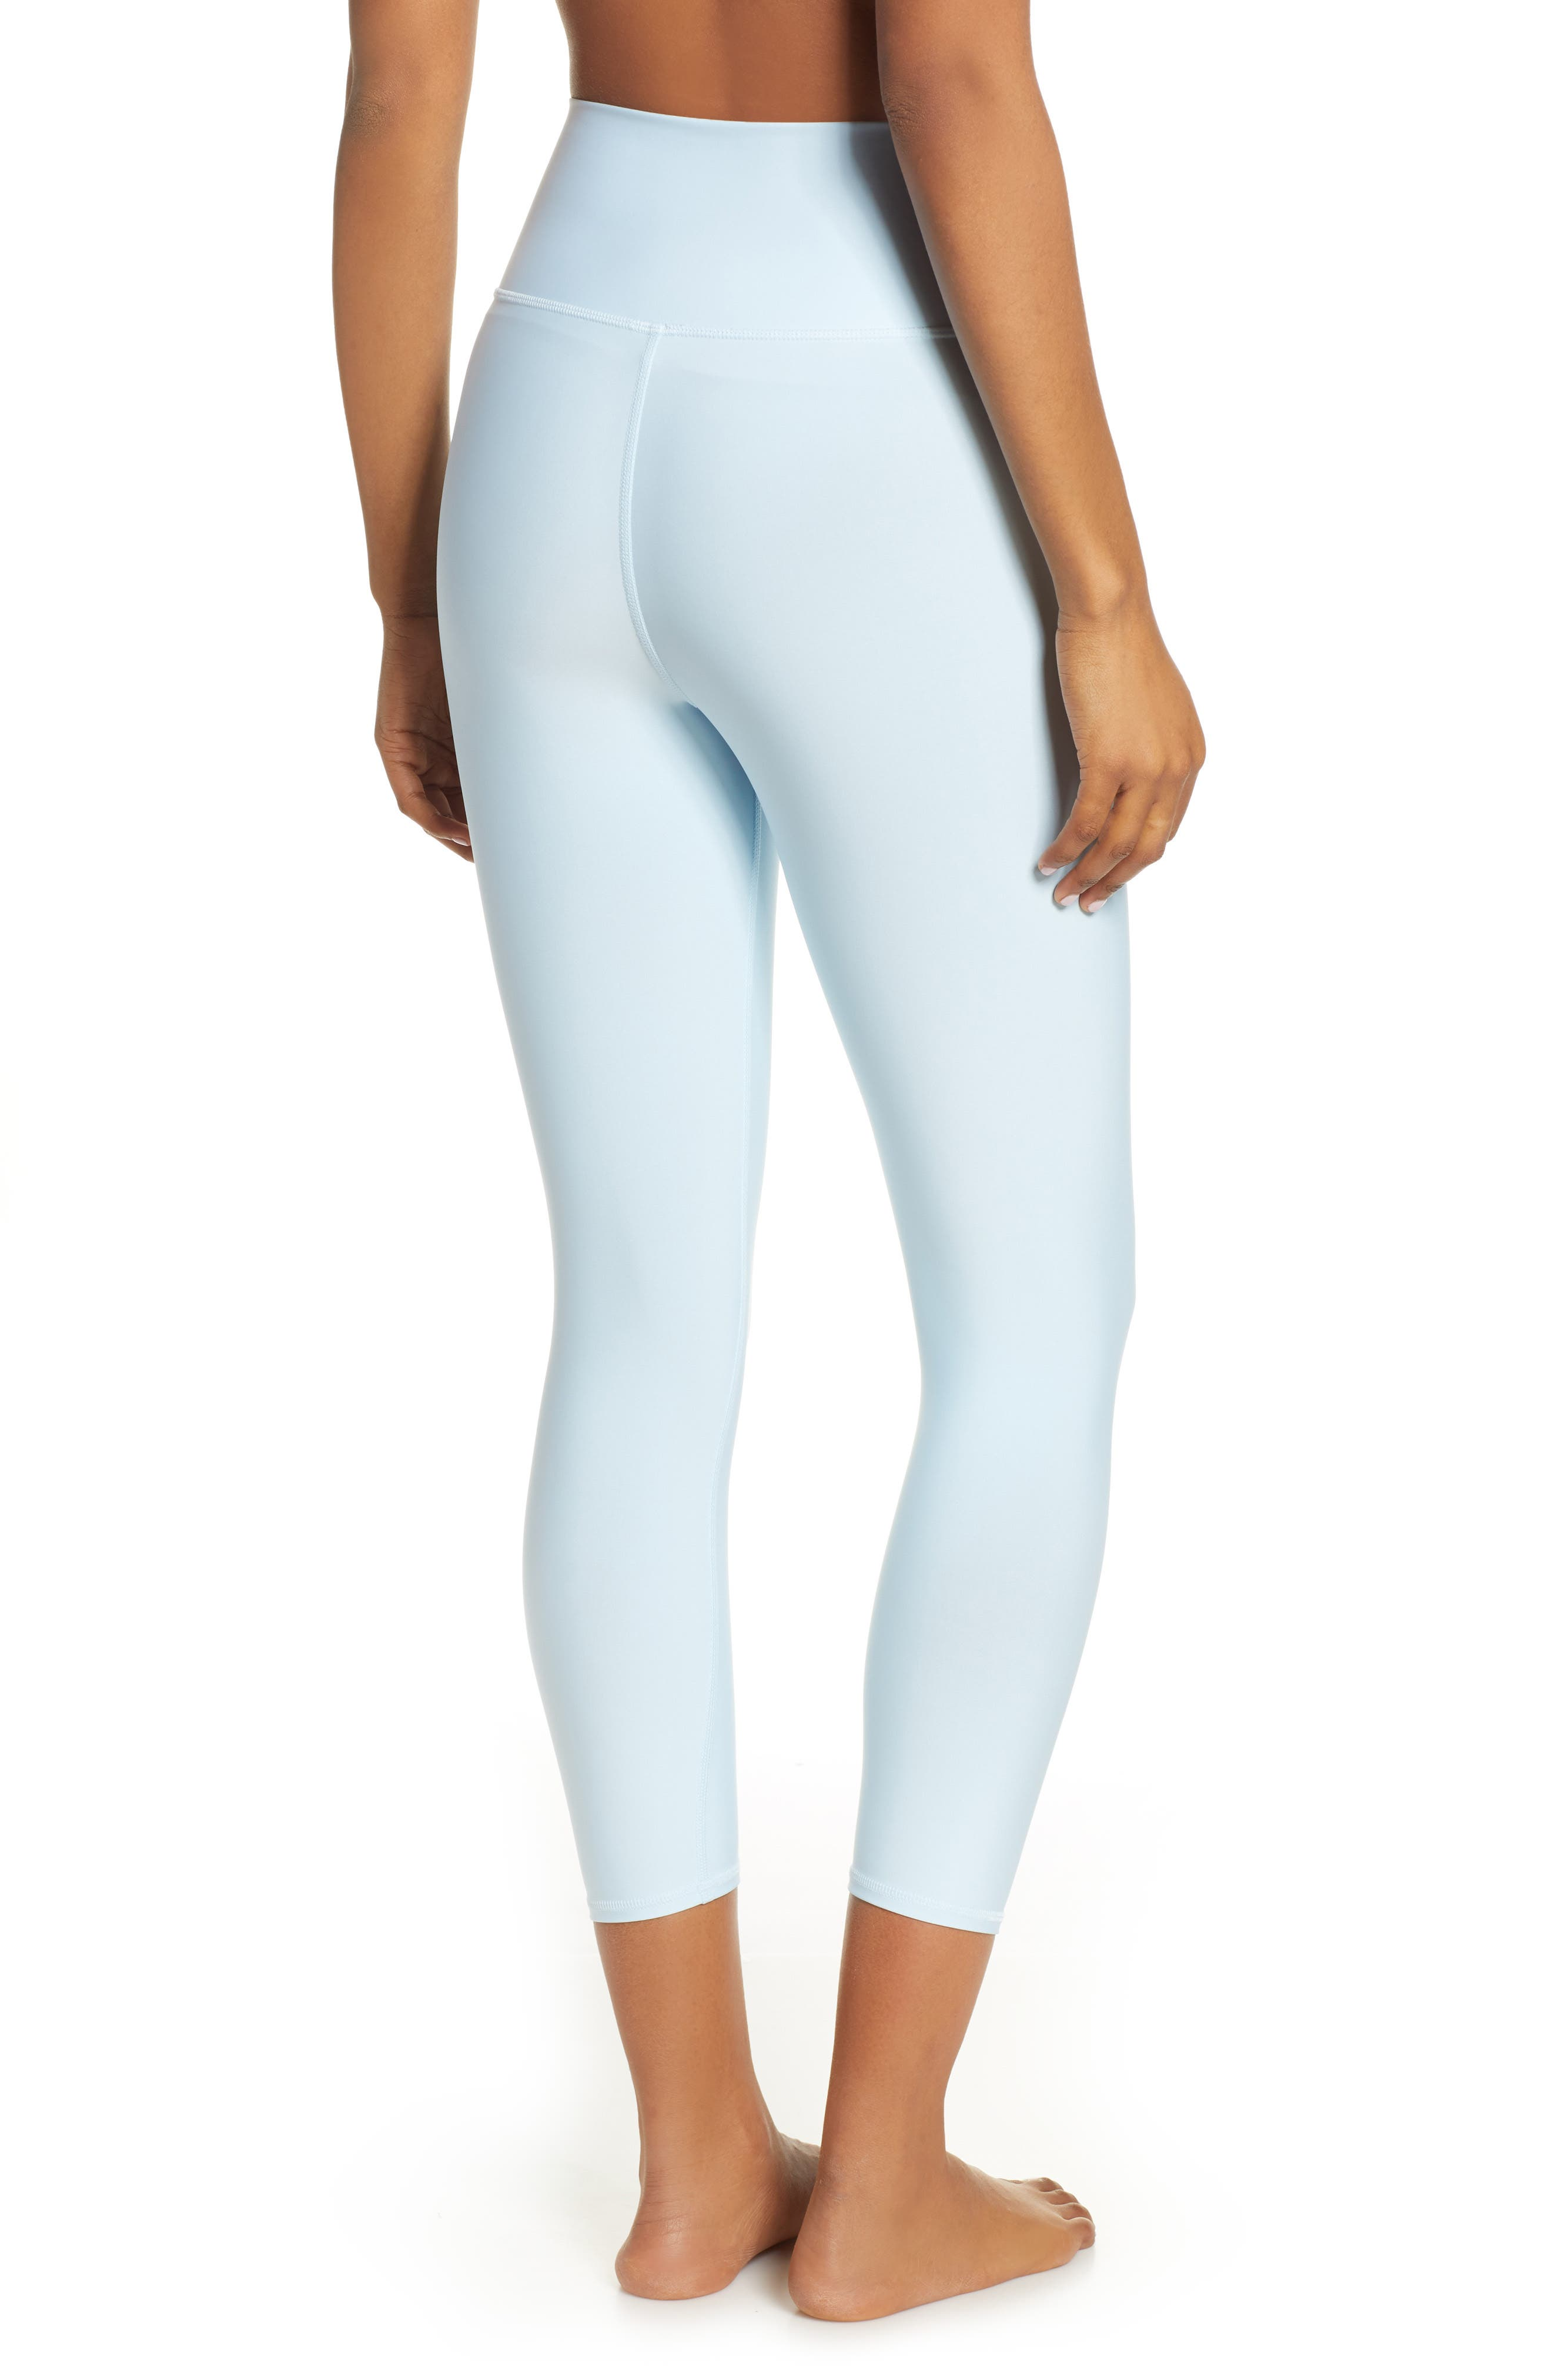 272083cf6bc Women's Leggings New Arrivals: Clothing, Shoes & Beauty   Nordstrom